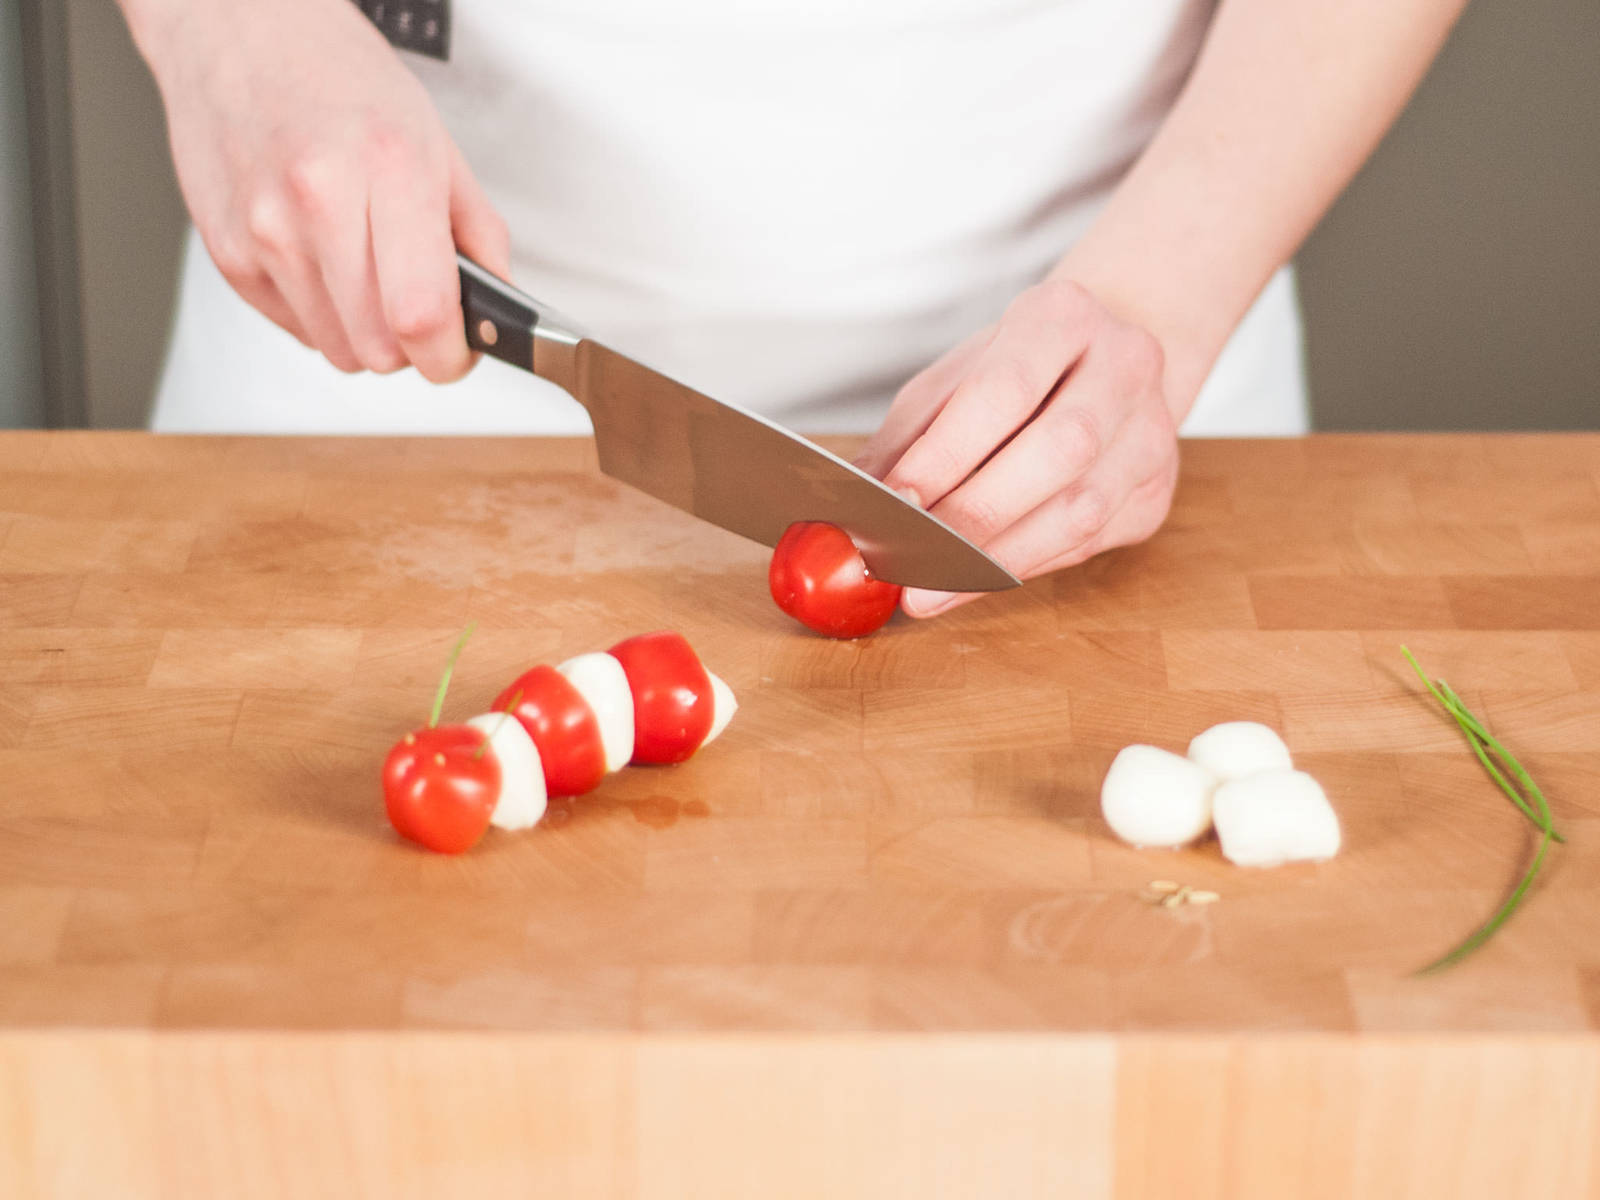 For the caterpillars, halve mozzarella balls and cherry tomatoes. For the head, slice pieces of chives, poke small holes in the head end, and stick chives into holes for antennas. Use a toothpick to poke holes for eyes. Arrange on a toothpick, alternating the mozzarella and tomato pieces.